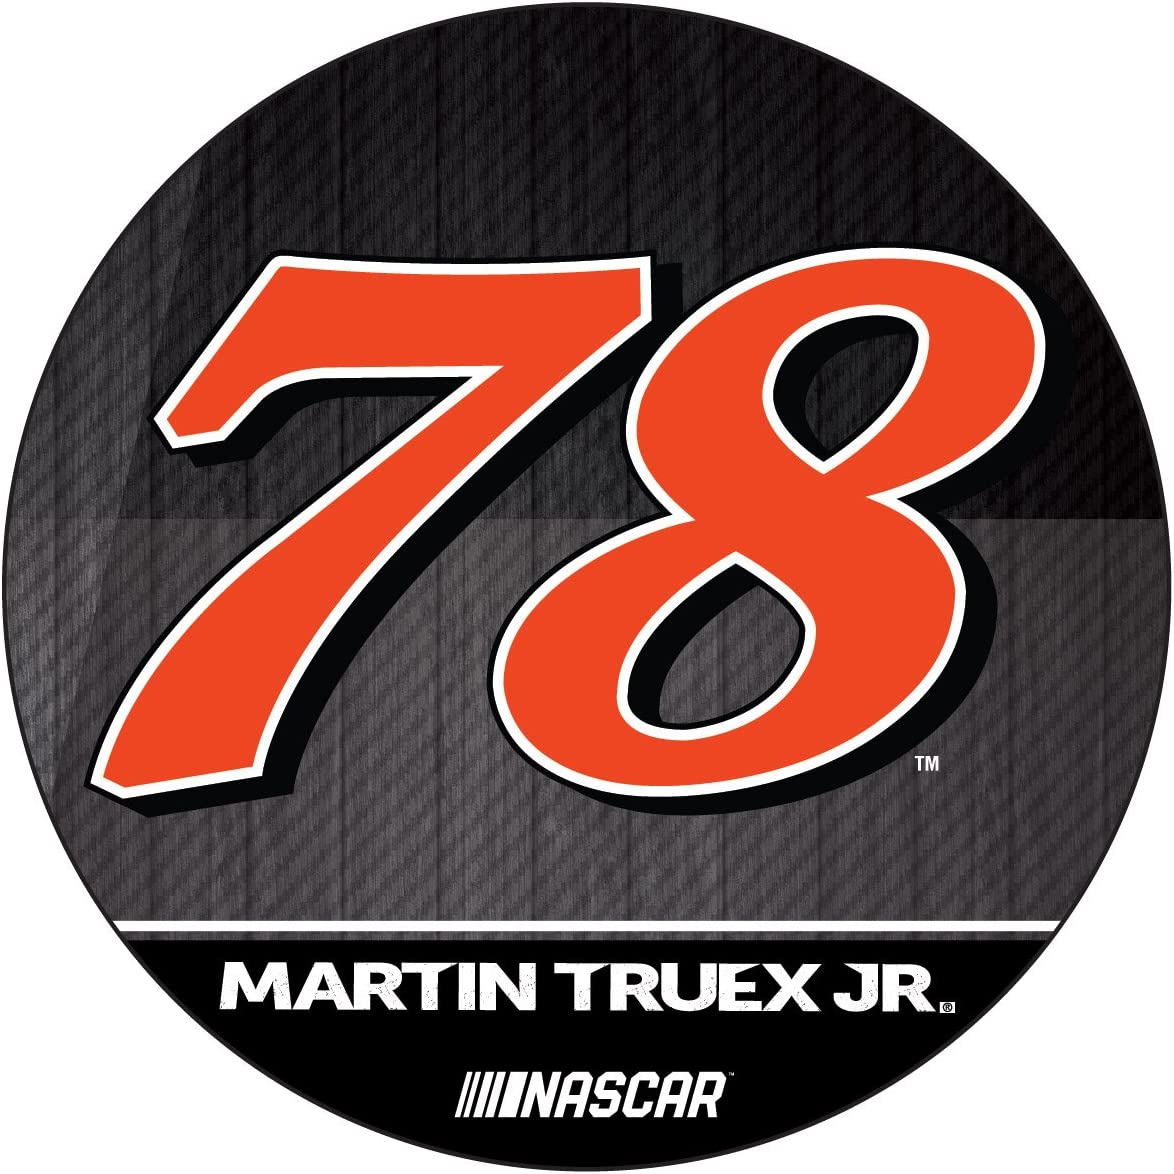 R and Imports Martin Truex Jr Number Ranking TOP15 Inch 4 Elegant Ma Round 78 Nascar